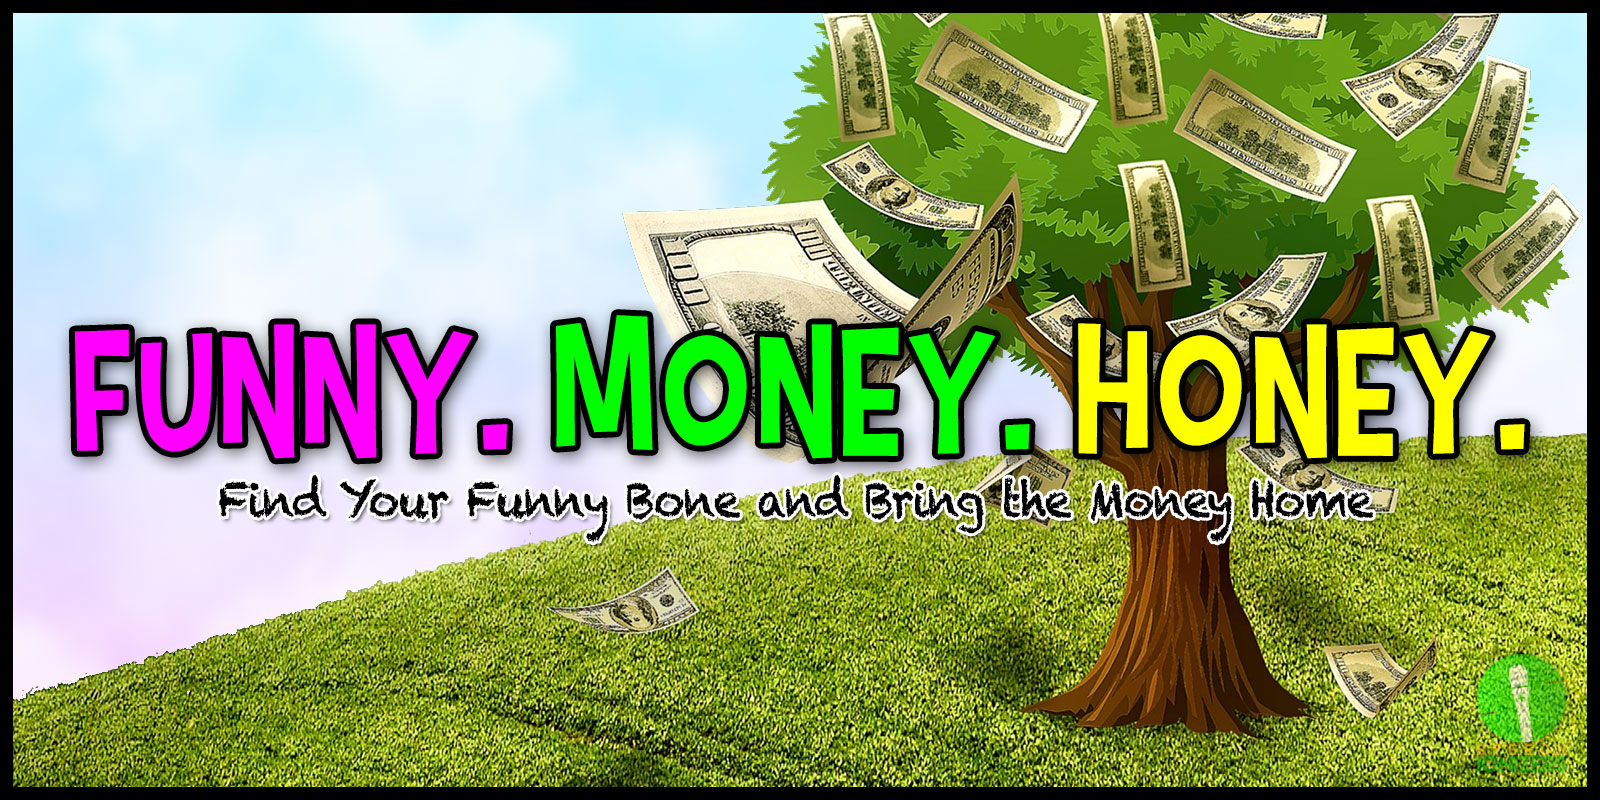 Funny Money Honey